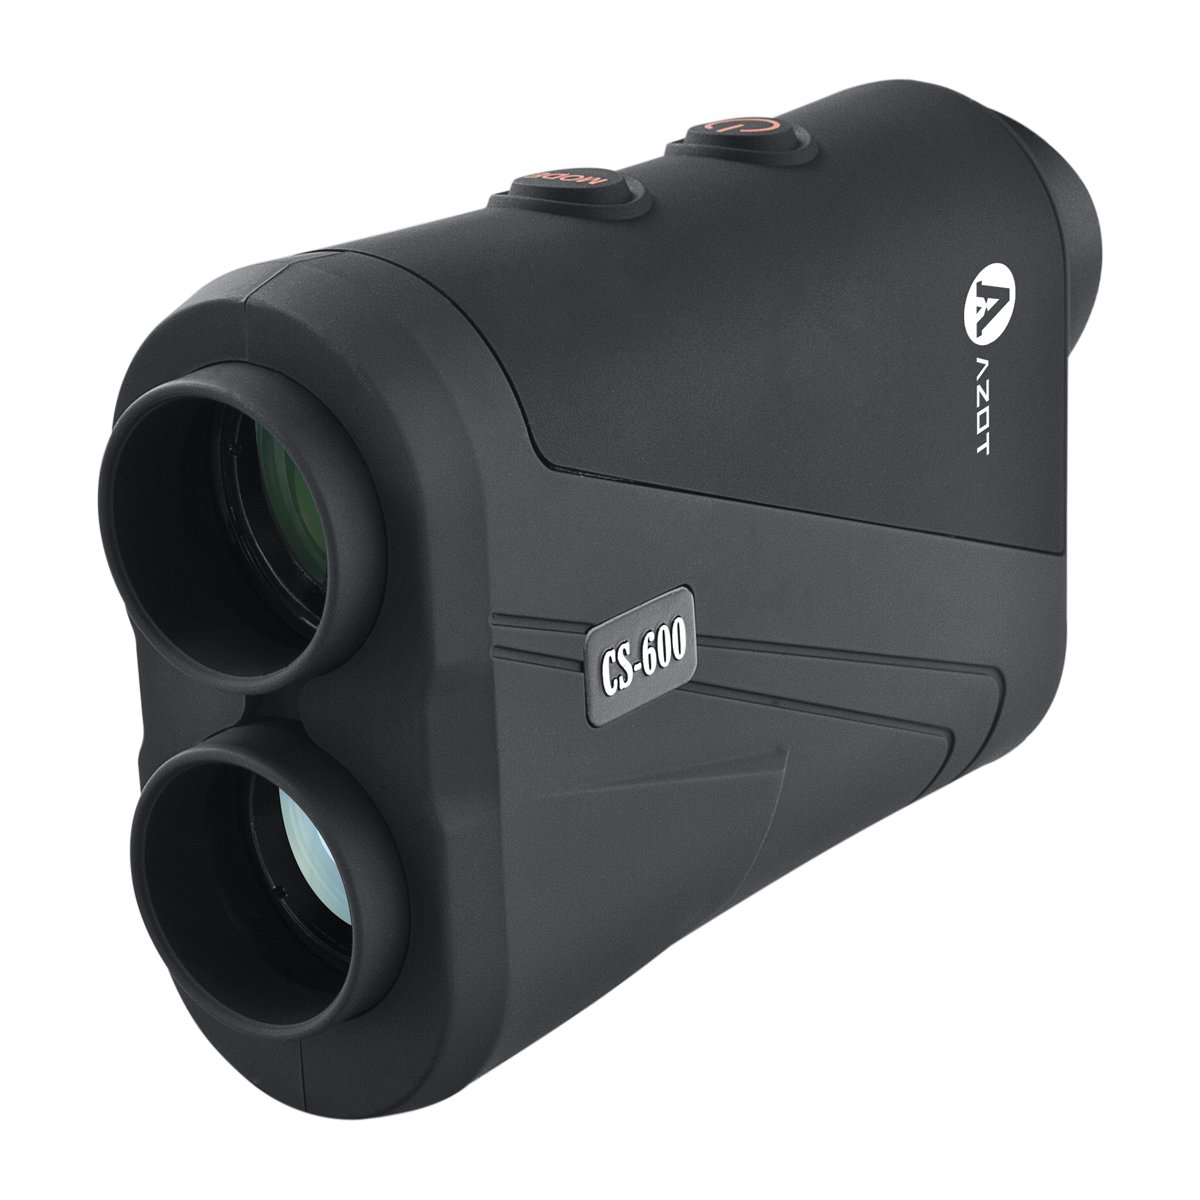 AZOT CS-600 Golf rangefinder Laser Range Finder with waterproof function Measure ranging and speed Free Battery by AZOT (Image #1)